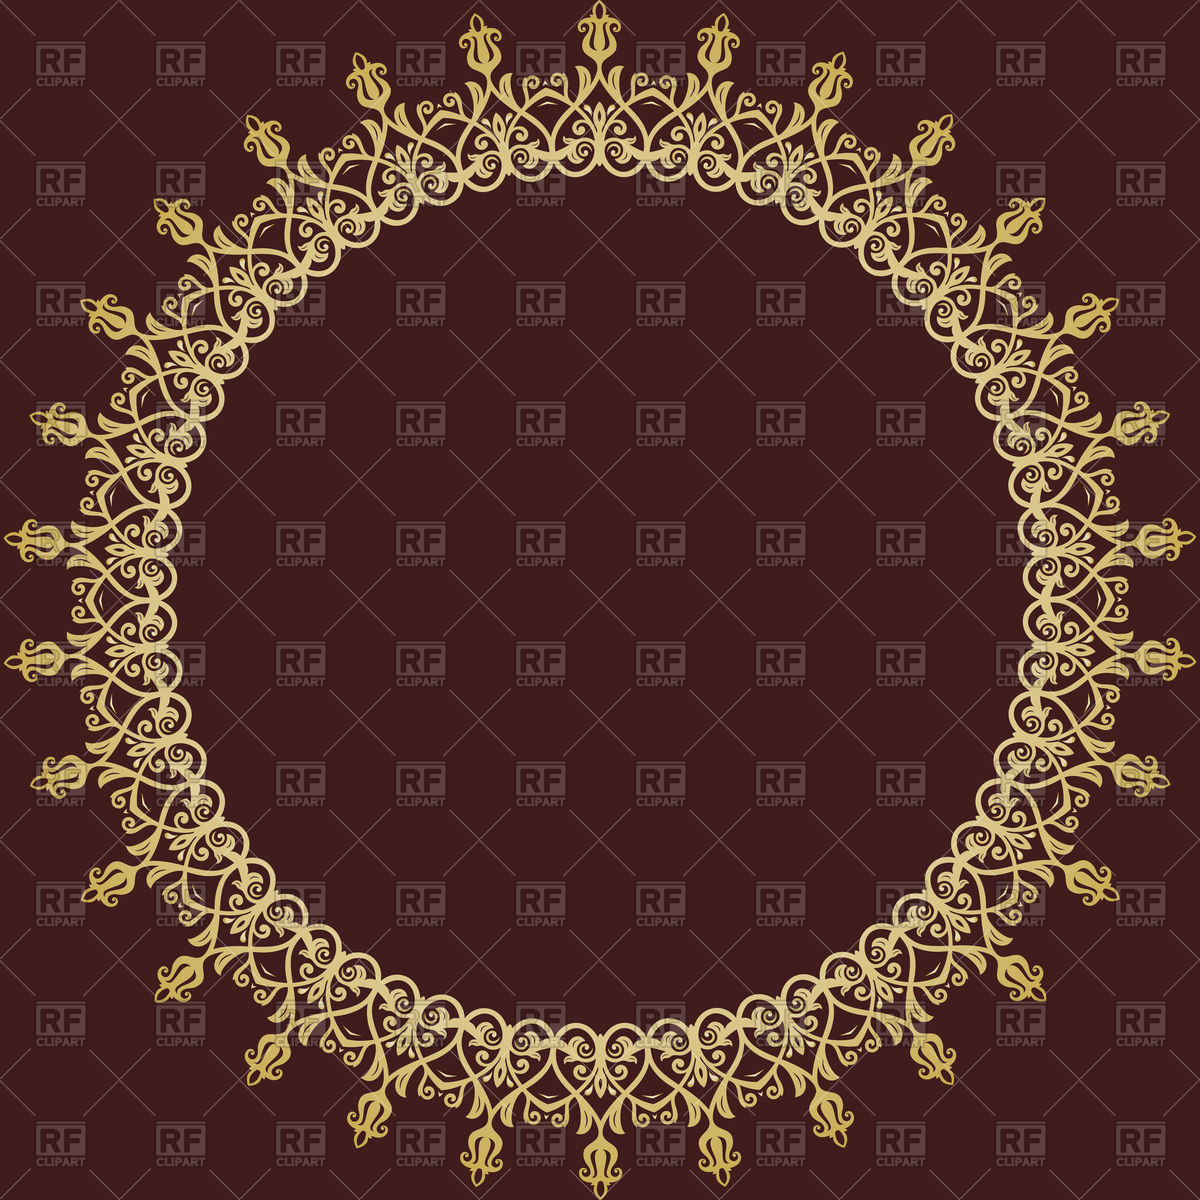 Oriental round frame with damask elements Vector Image #166233.